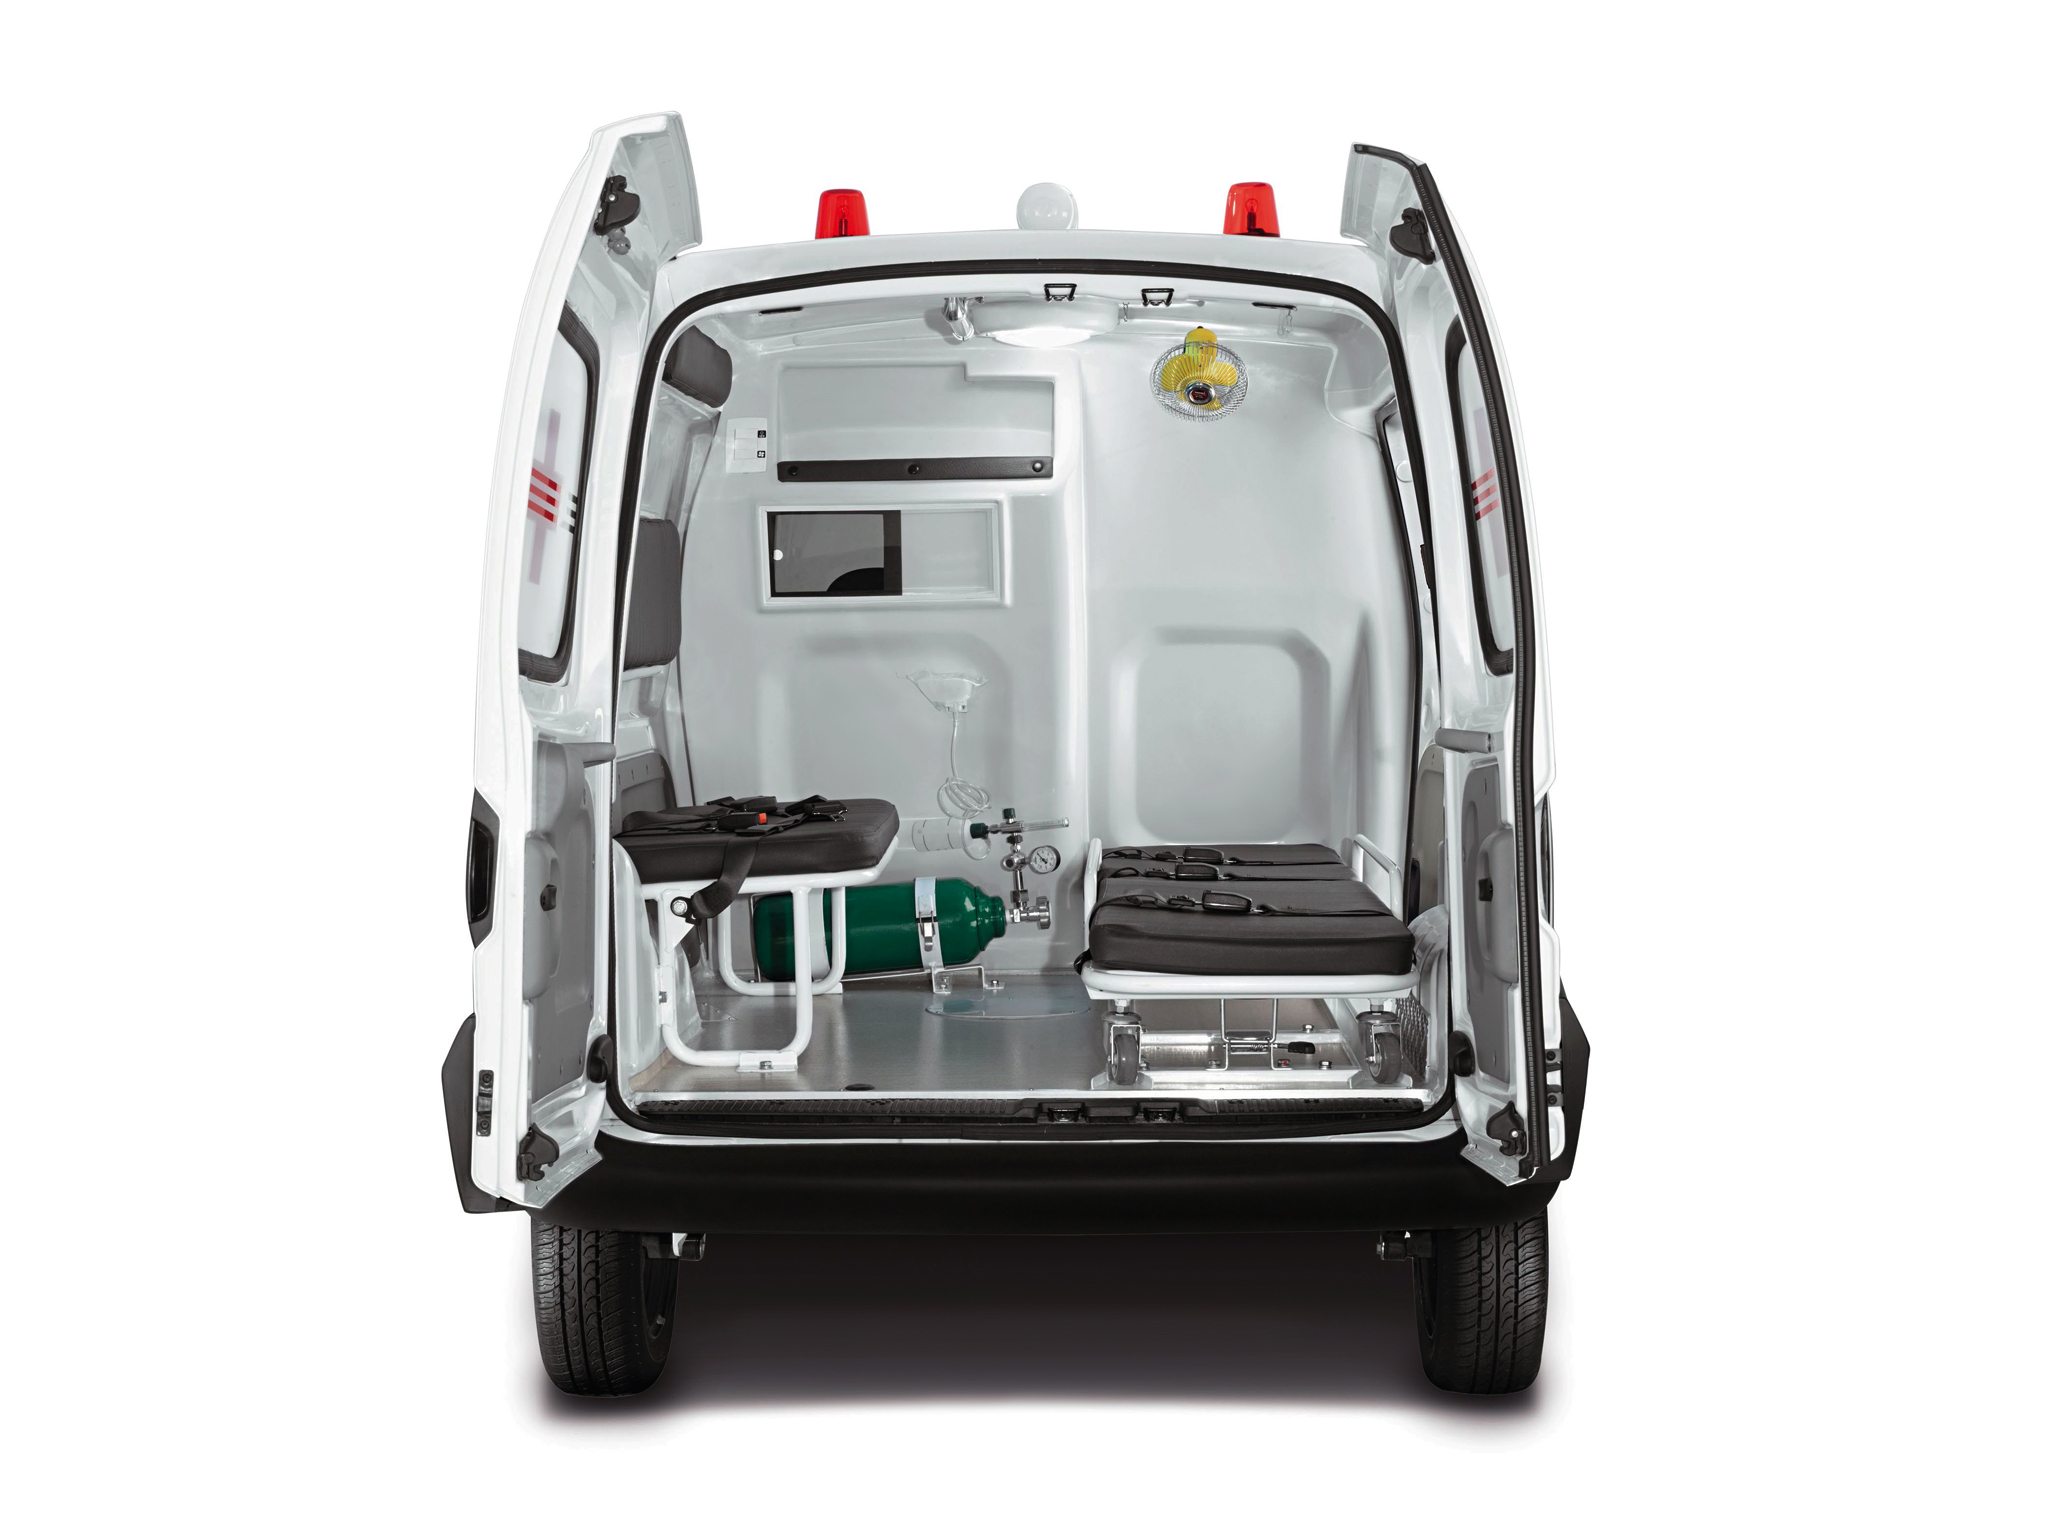 2008 renault kangoo express ambulancia br spec ambulance. Black Bedroom Furniture Sets. Home Design Ideas